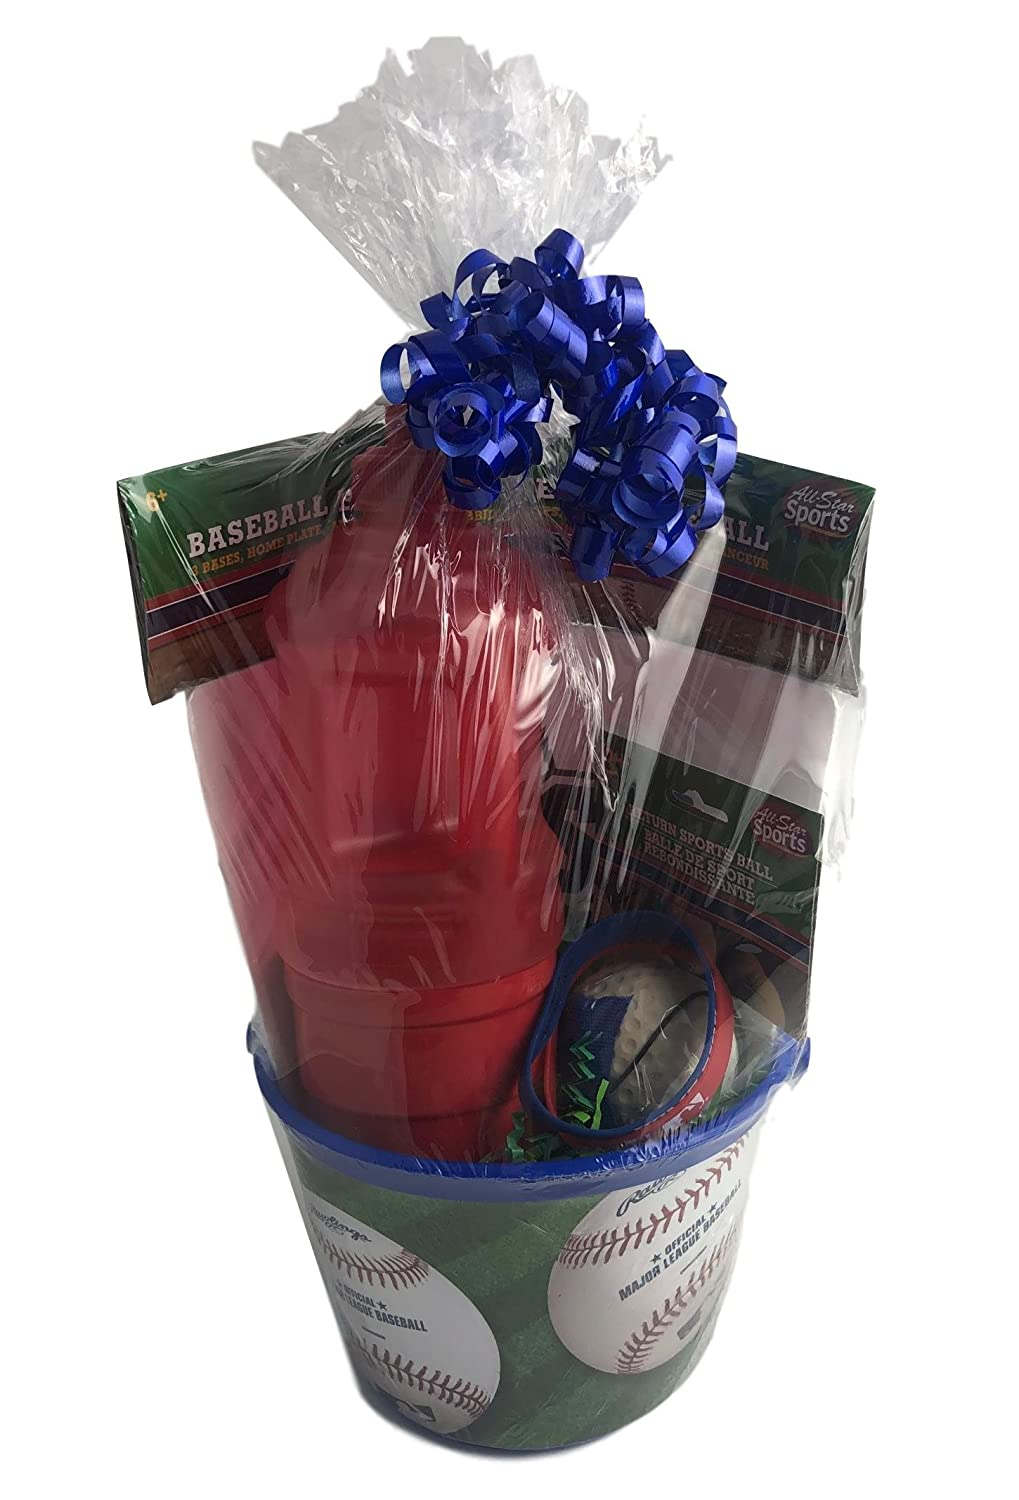 Happy Birthday Young Boy Gift Basket for Ages 6-10 Baseball Sports Party Generic